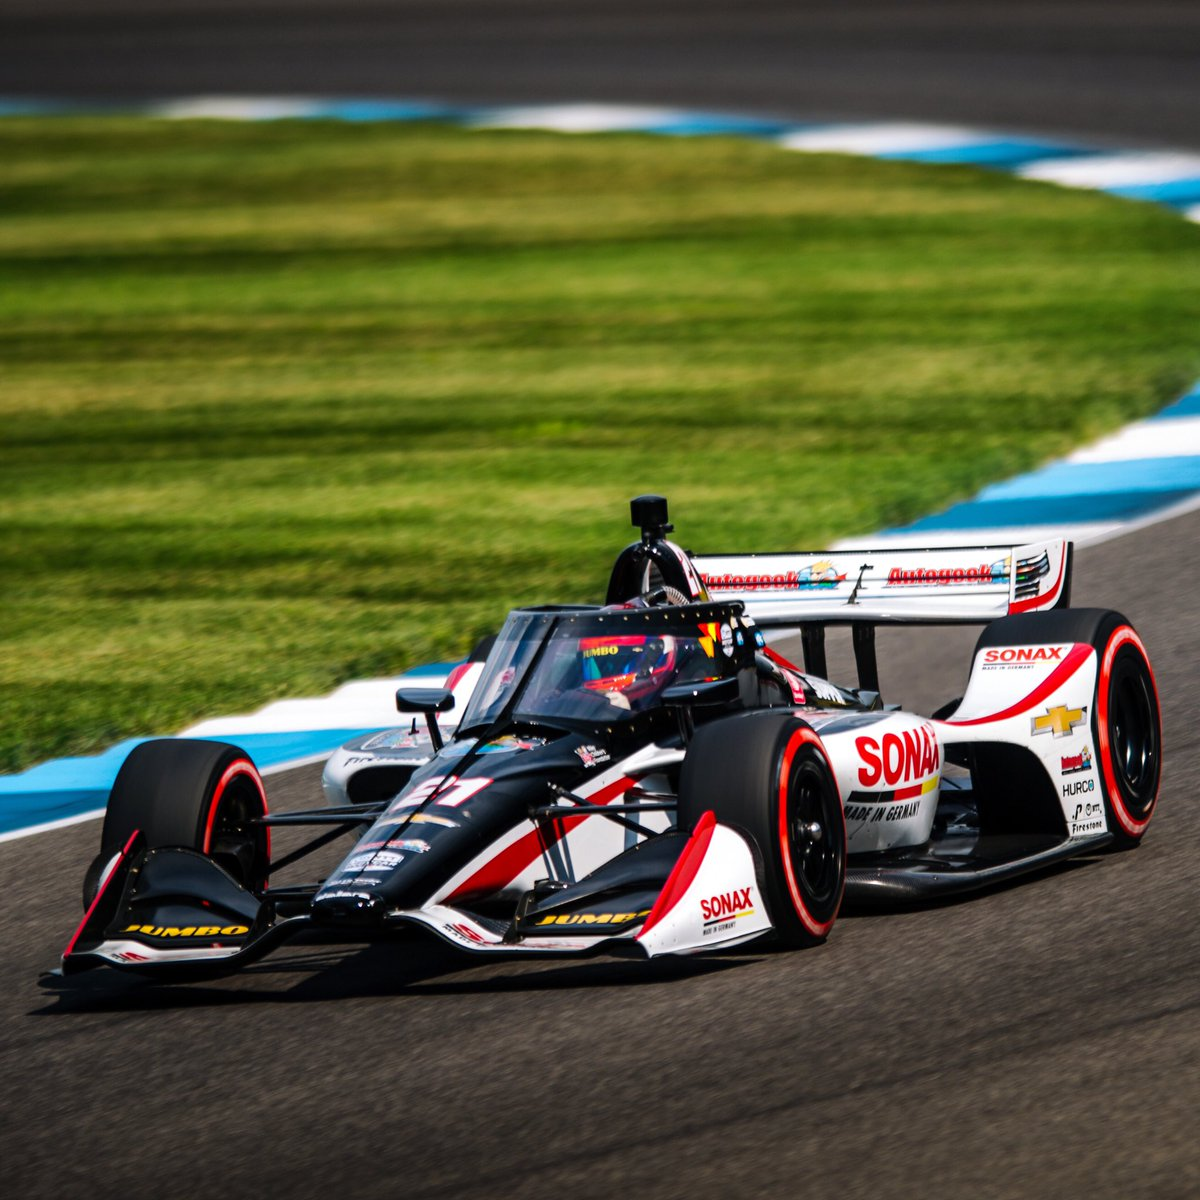 [Race Result] @rinusveekay - 5th RVK was the very first car to pit today, a strategy call that would enable him to drive through the field at today's #INDYGP. In only his second @indycar race, RVK earned his first career Top 5 finish.